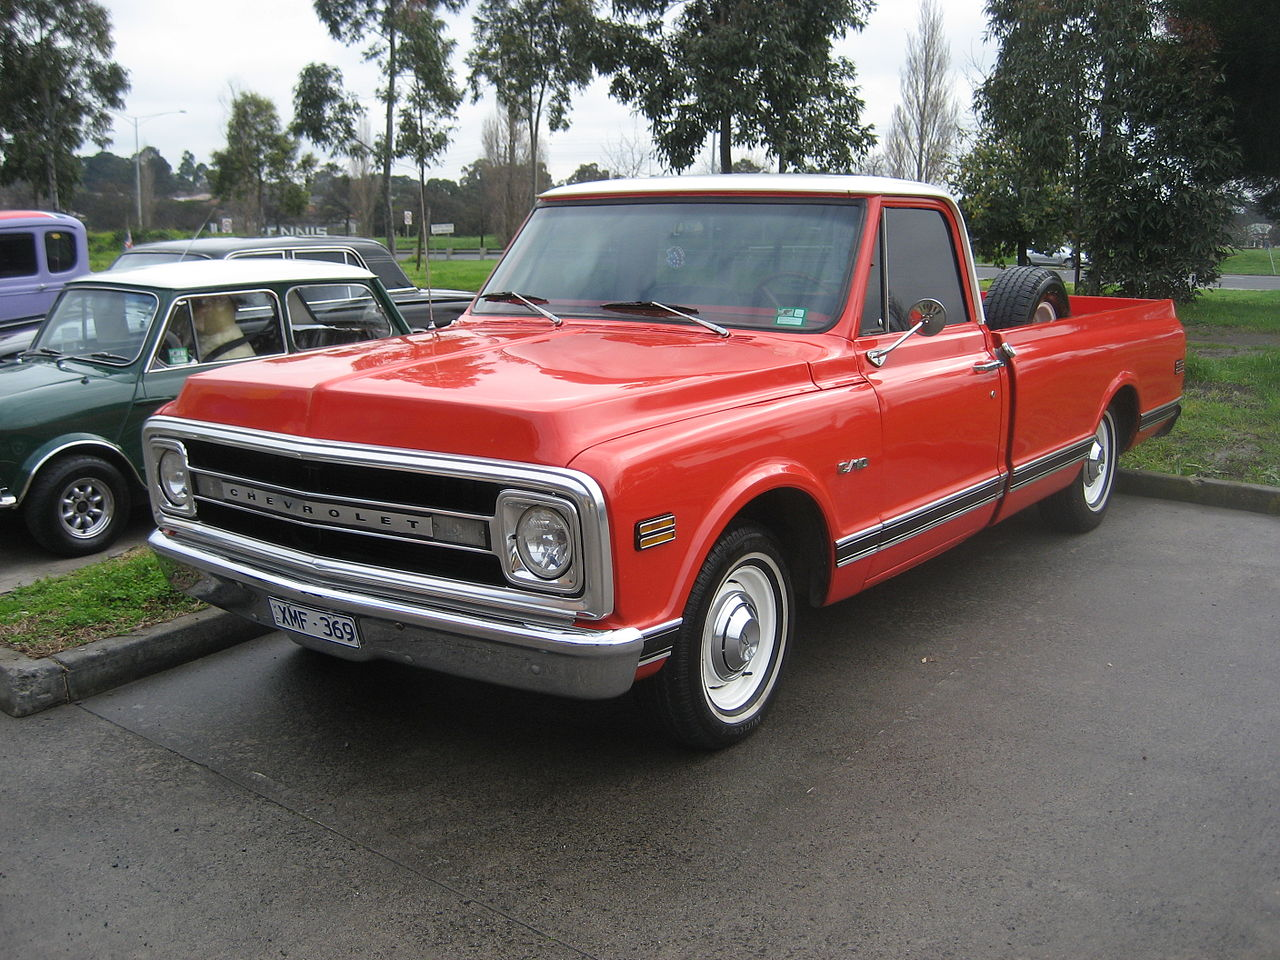 All Chevy chevy c10 wiki : File:1970 Chevrolet C10 Pickup.jpg - Wikimedia Commons